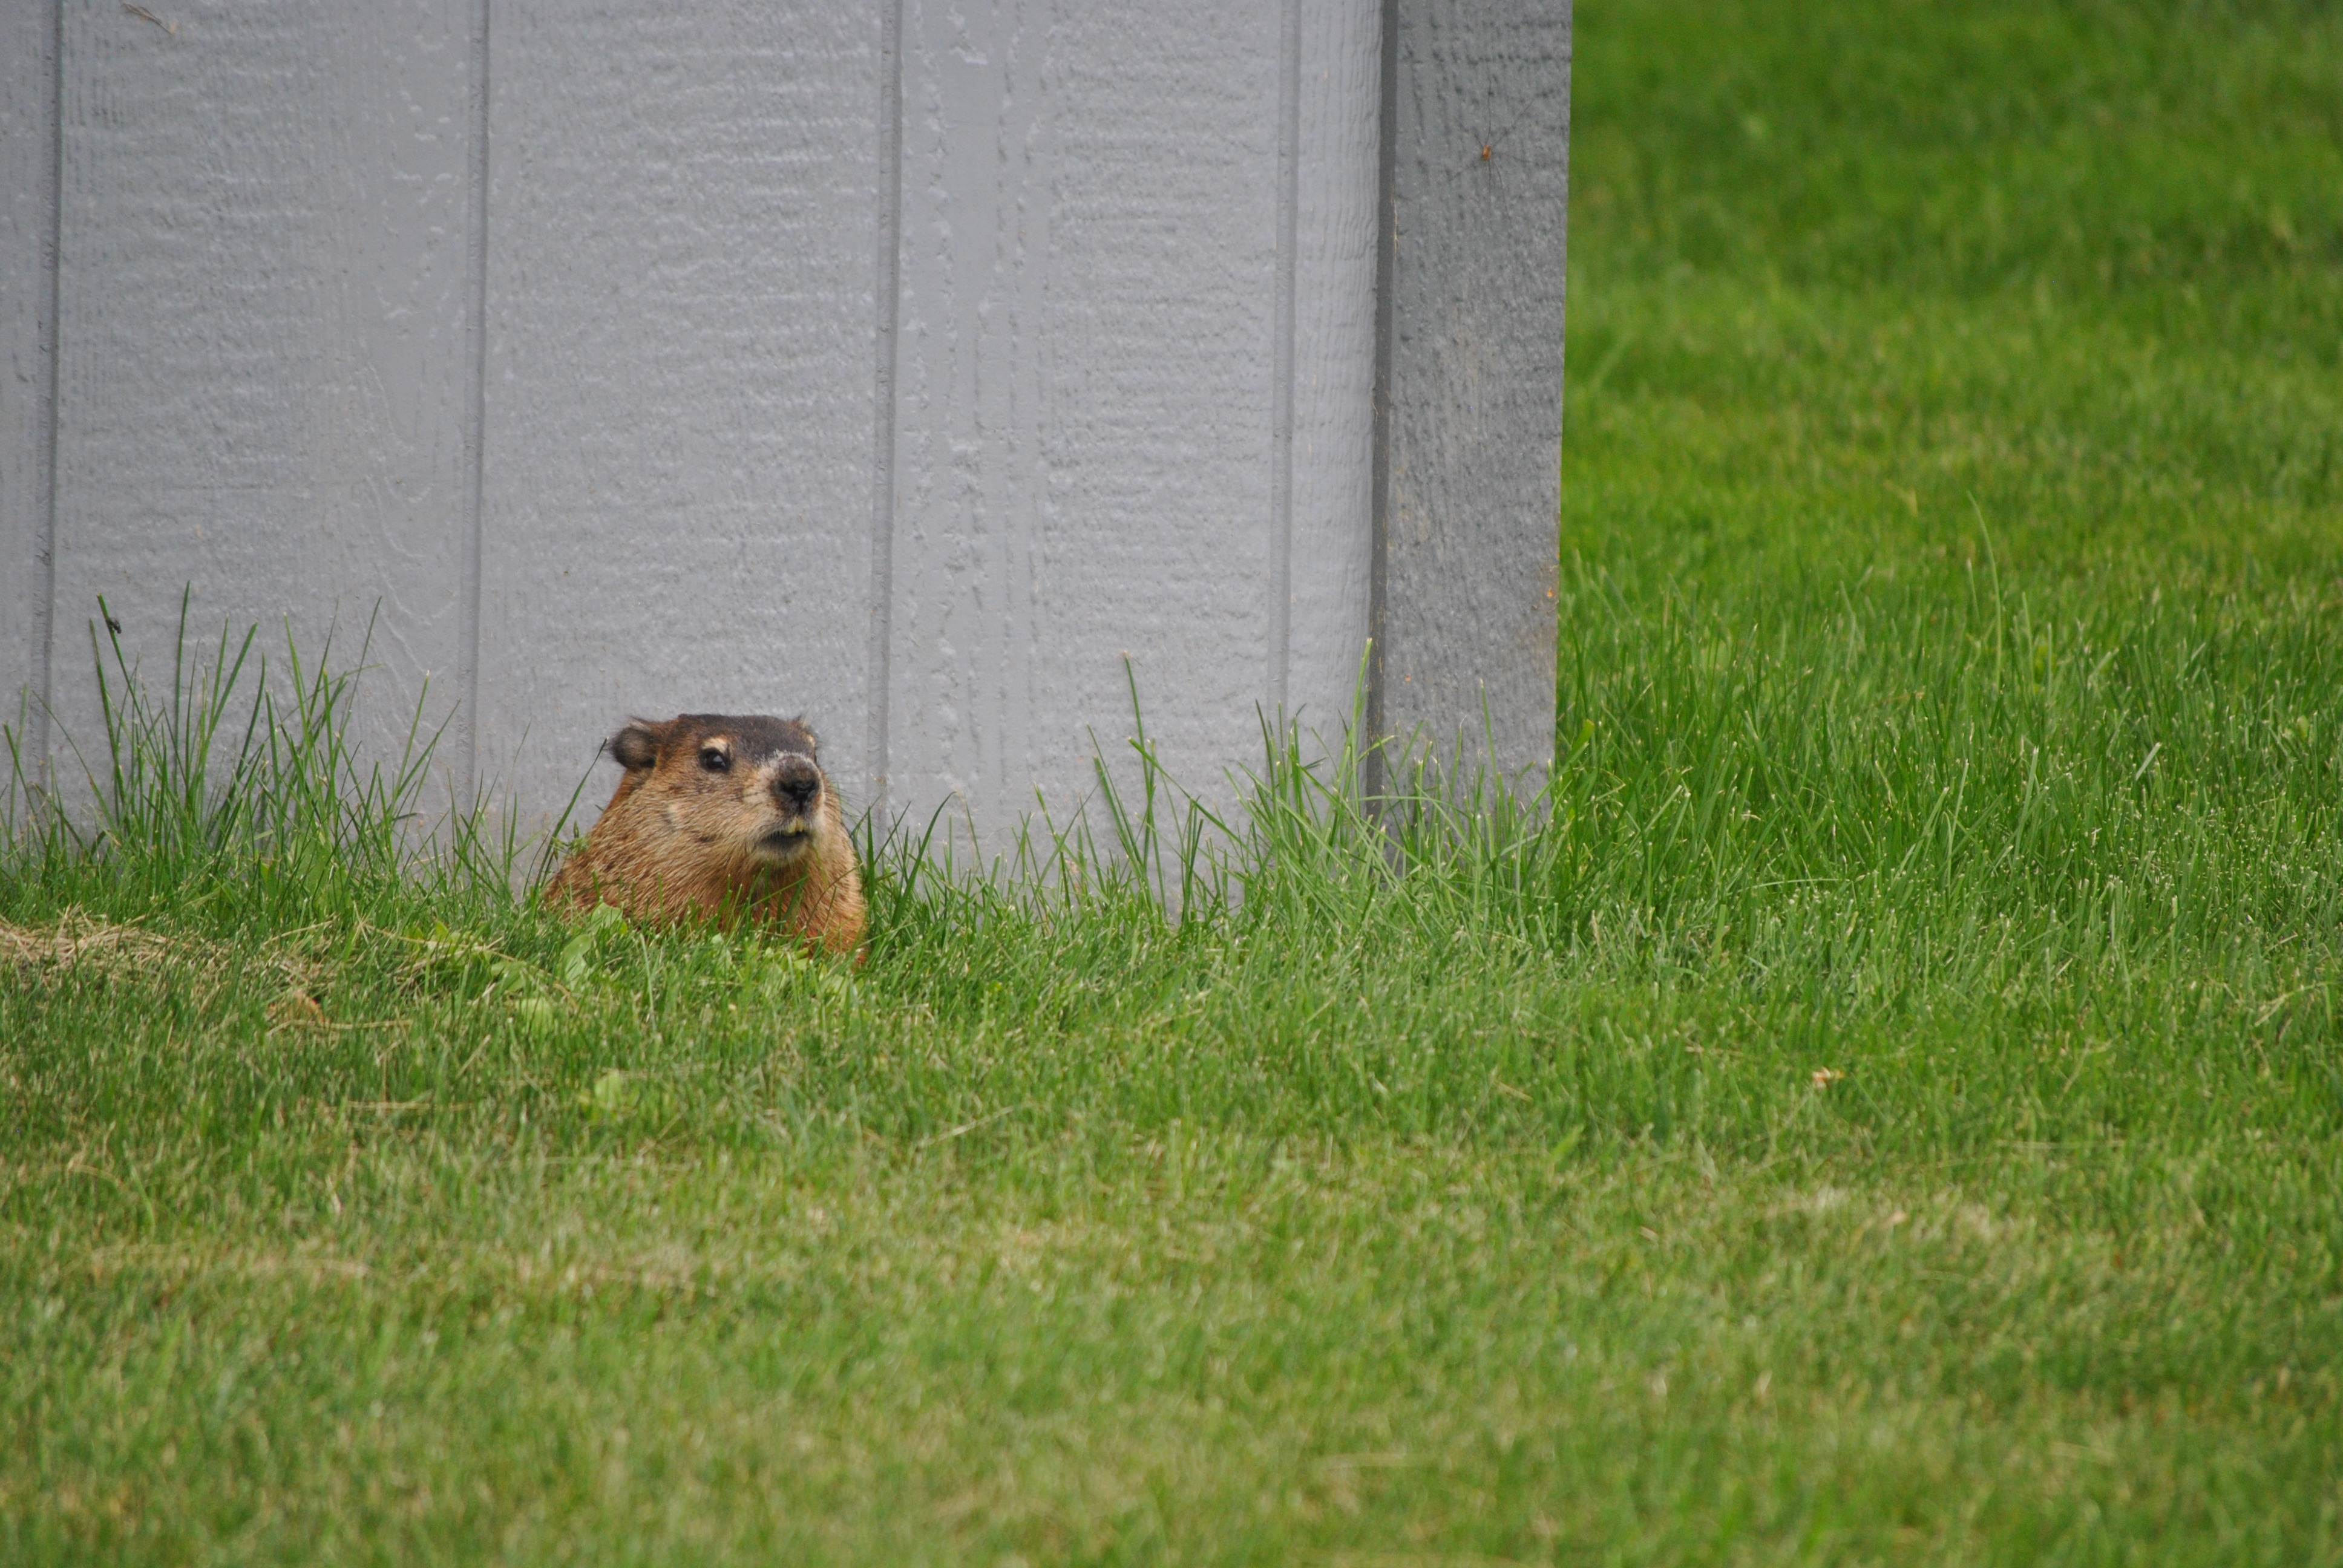 A woodchuck (or groundhog) on the St. Lawrence University campus.